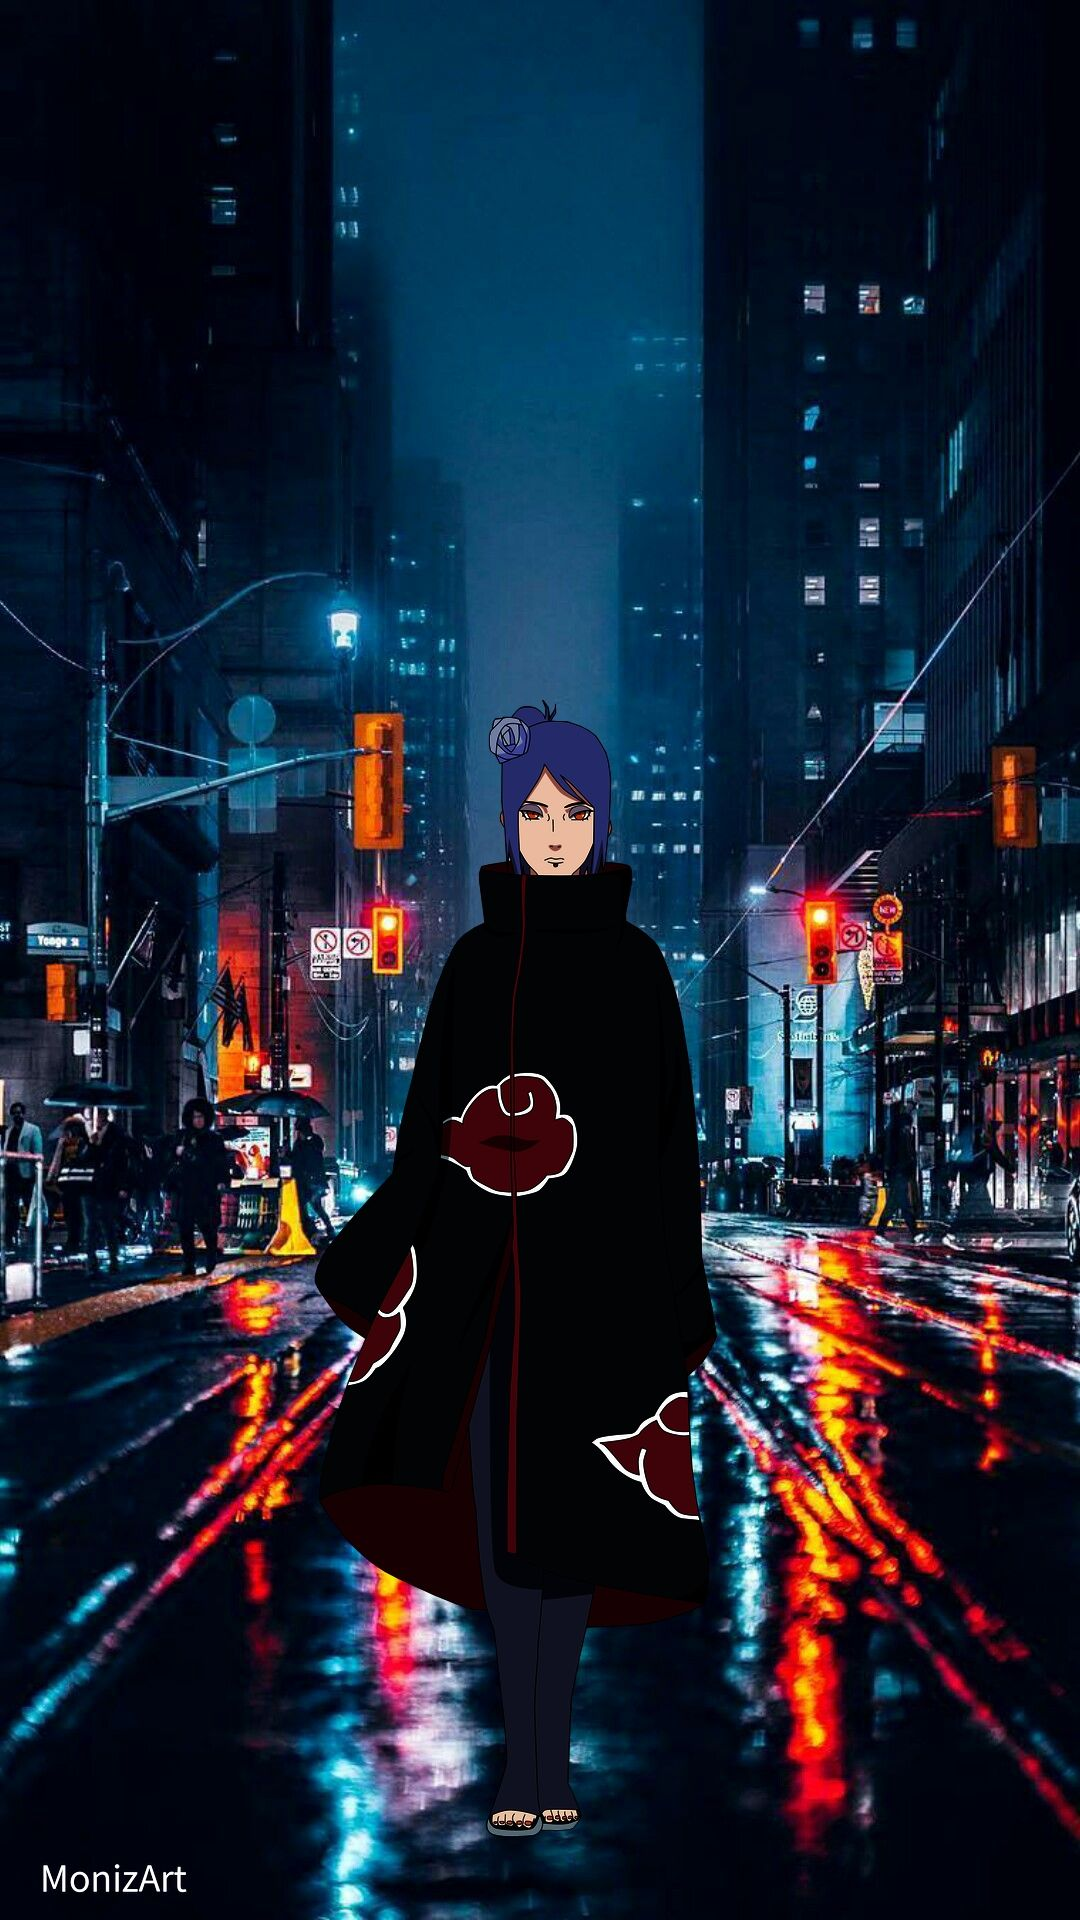 naruto anime wallpaper in 2020 Instagram, Photo and